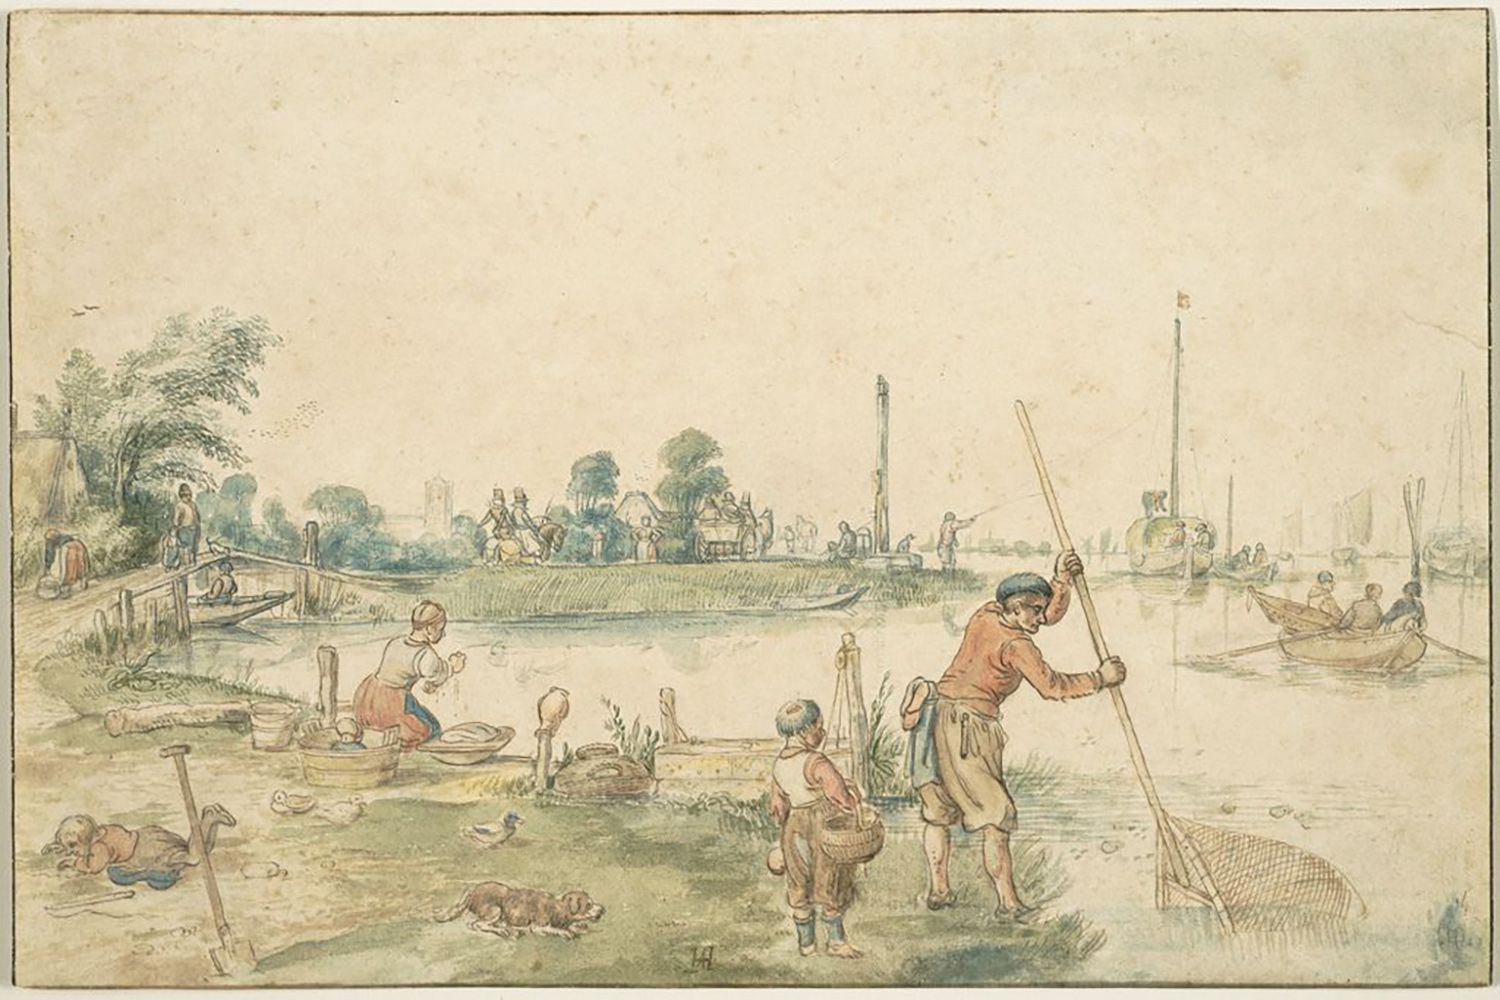 Hendrick Barentsz. Avercamp, Landscape (near Ouderkerk?) with a Fisherman, 17th century. Brown ink and watercolor over graphite on beige antique laid paper. Maida and George Abrams Collection, Boston, Massachusetts, TL41760.16.